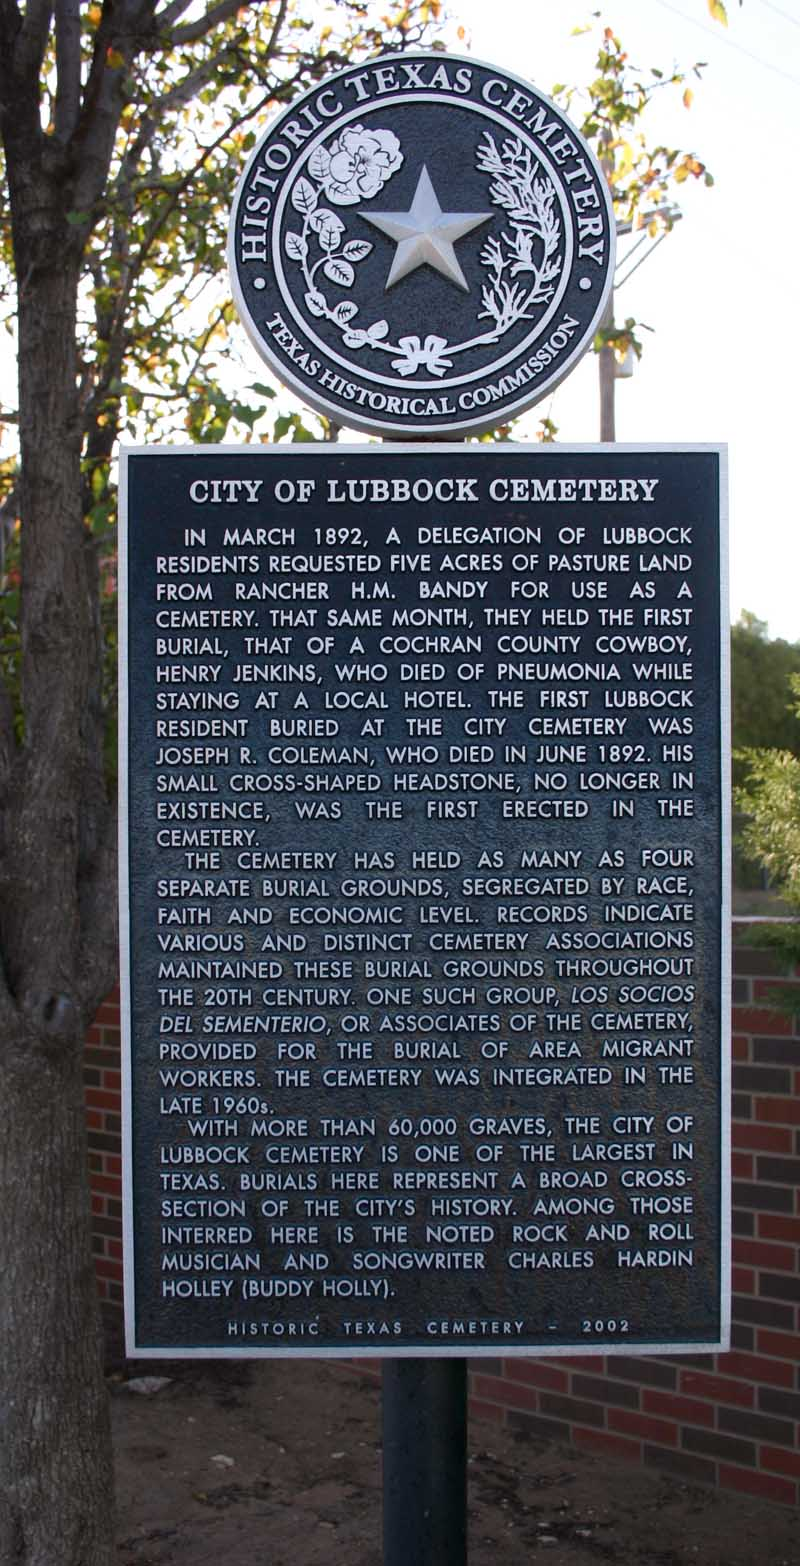 City of Lubbock Cemetery